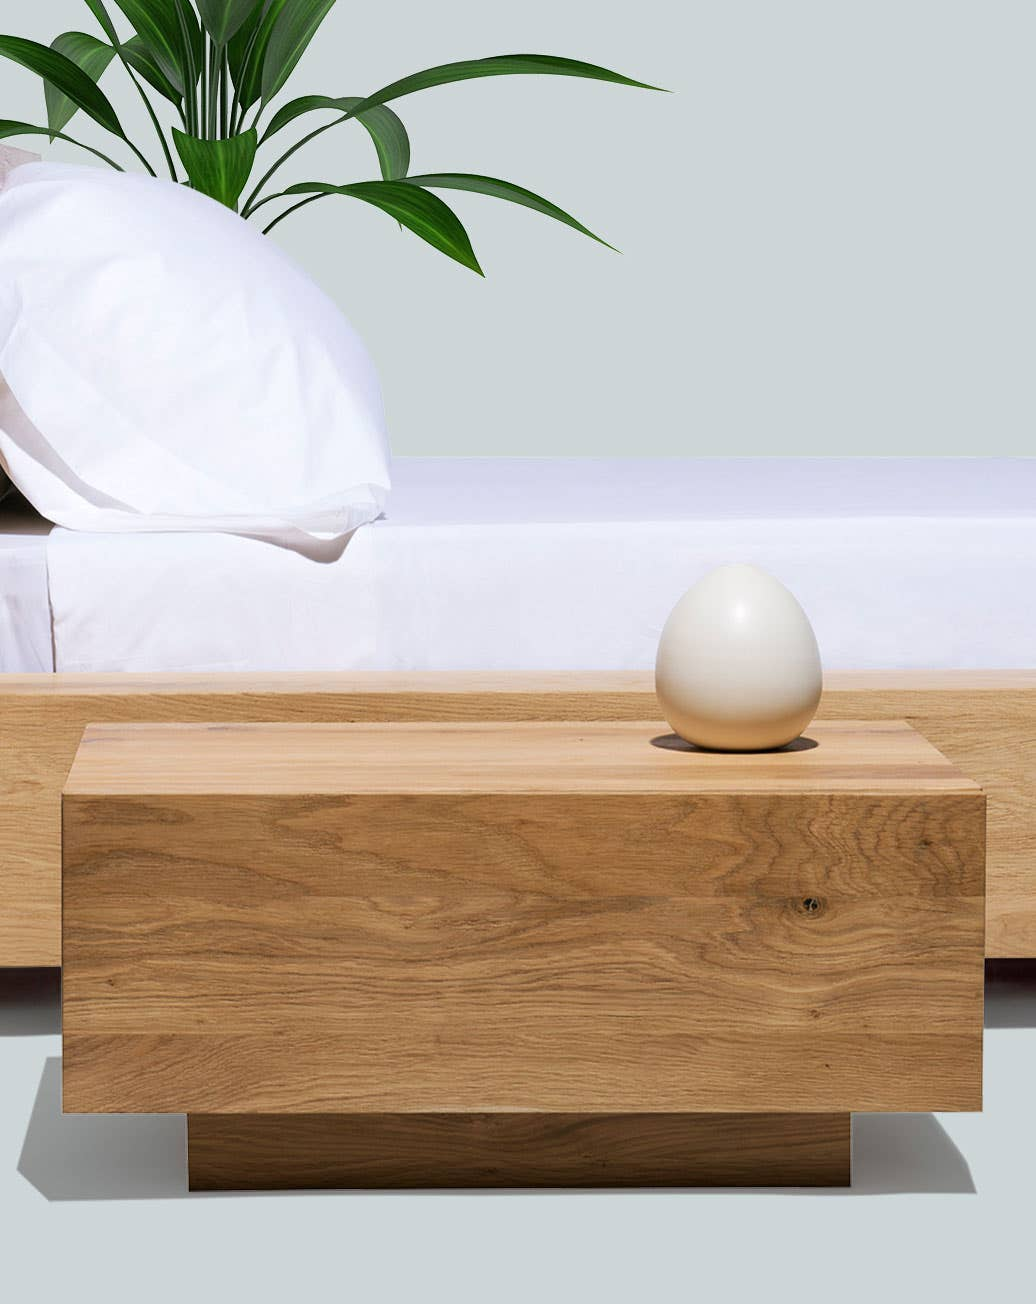 The Industry West Madra nightstand in front of a bed with a plant in the background.